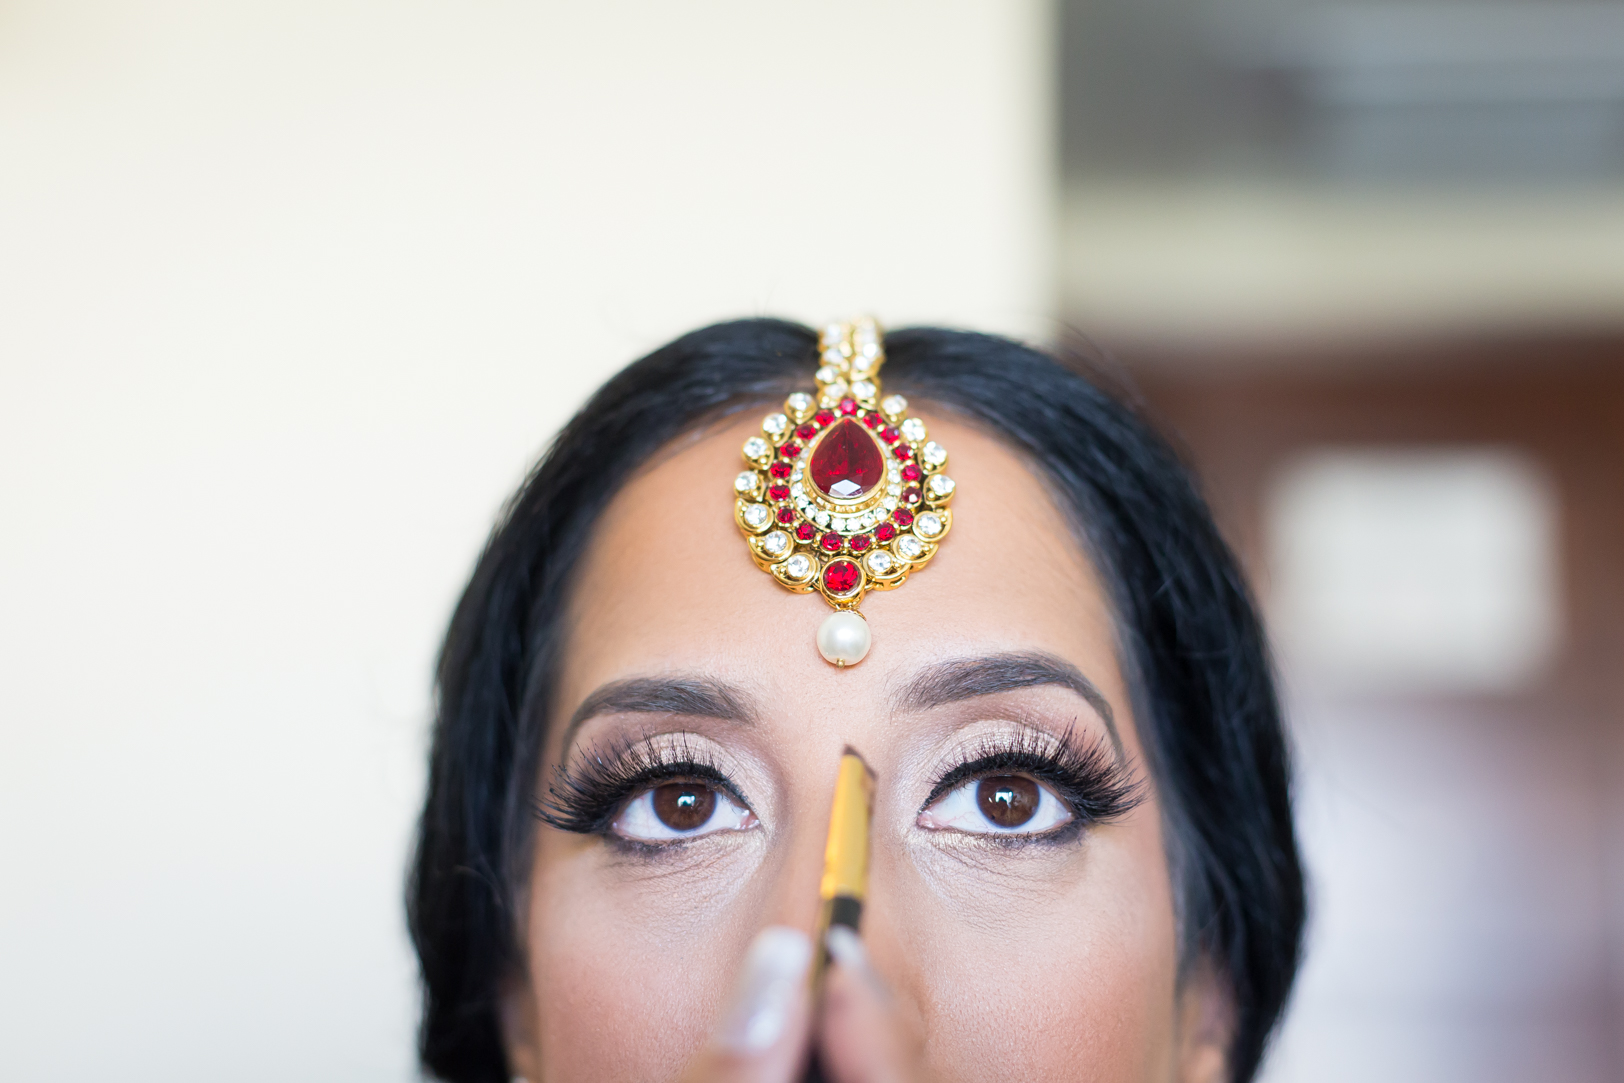 Pictures Taken By Deep Blue Photography At An Indian Destination Wedding In Mexico